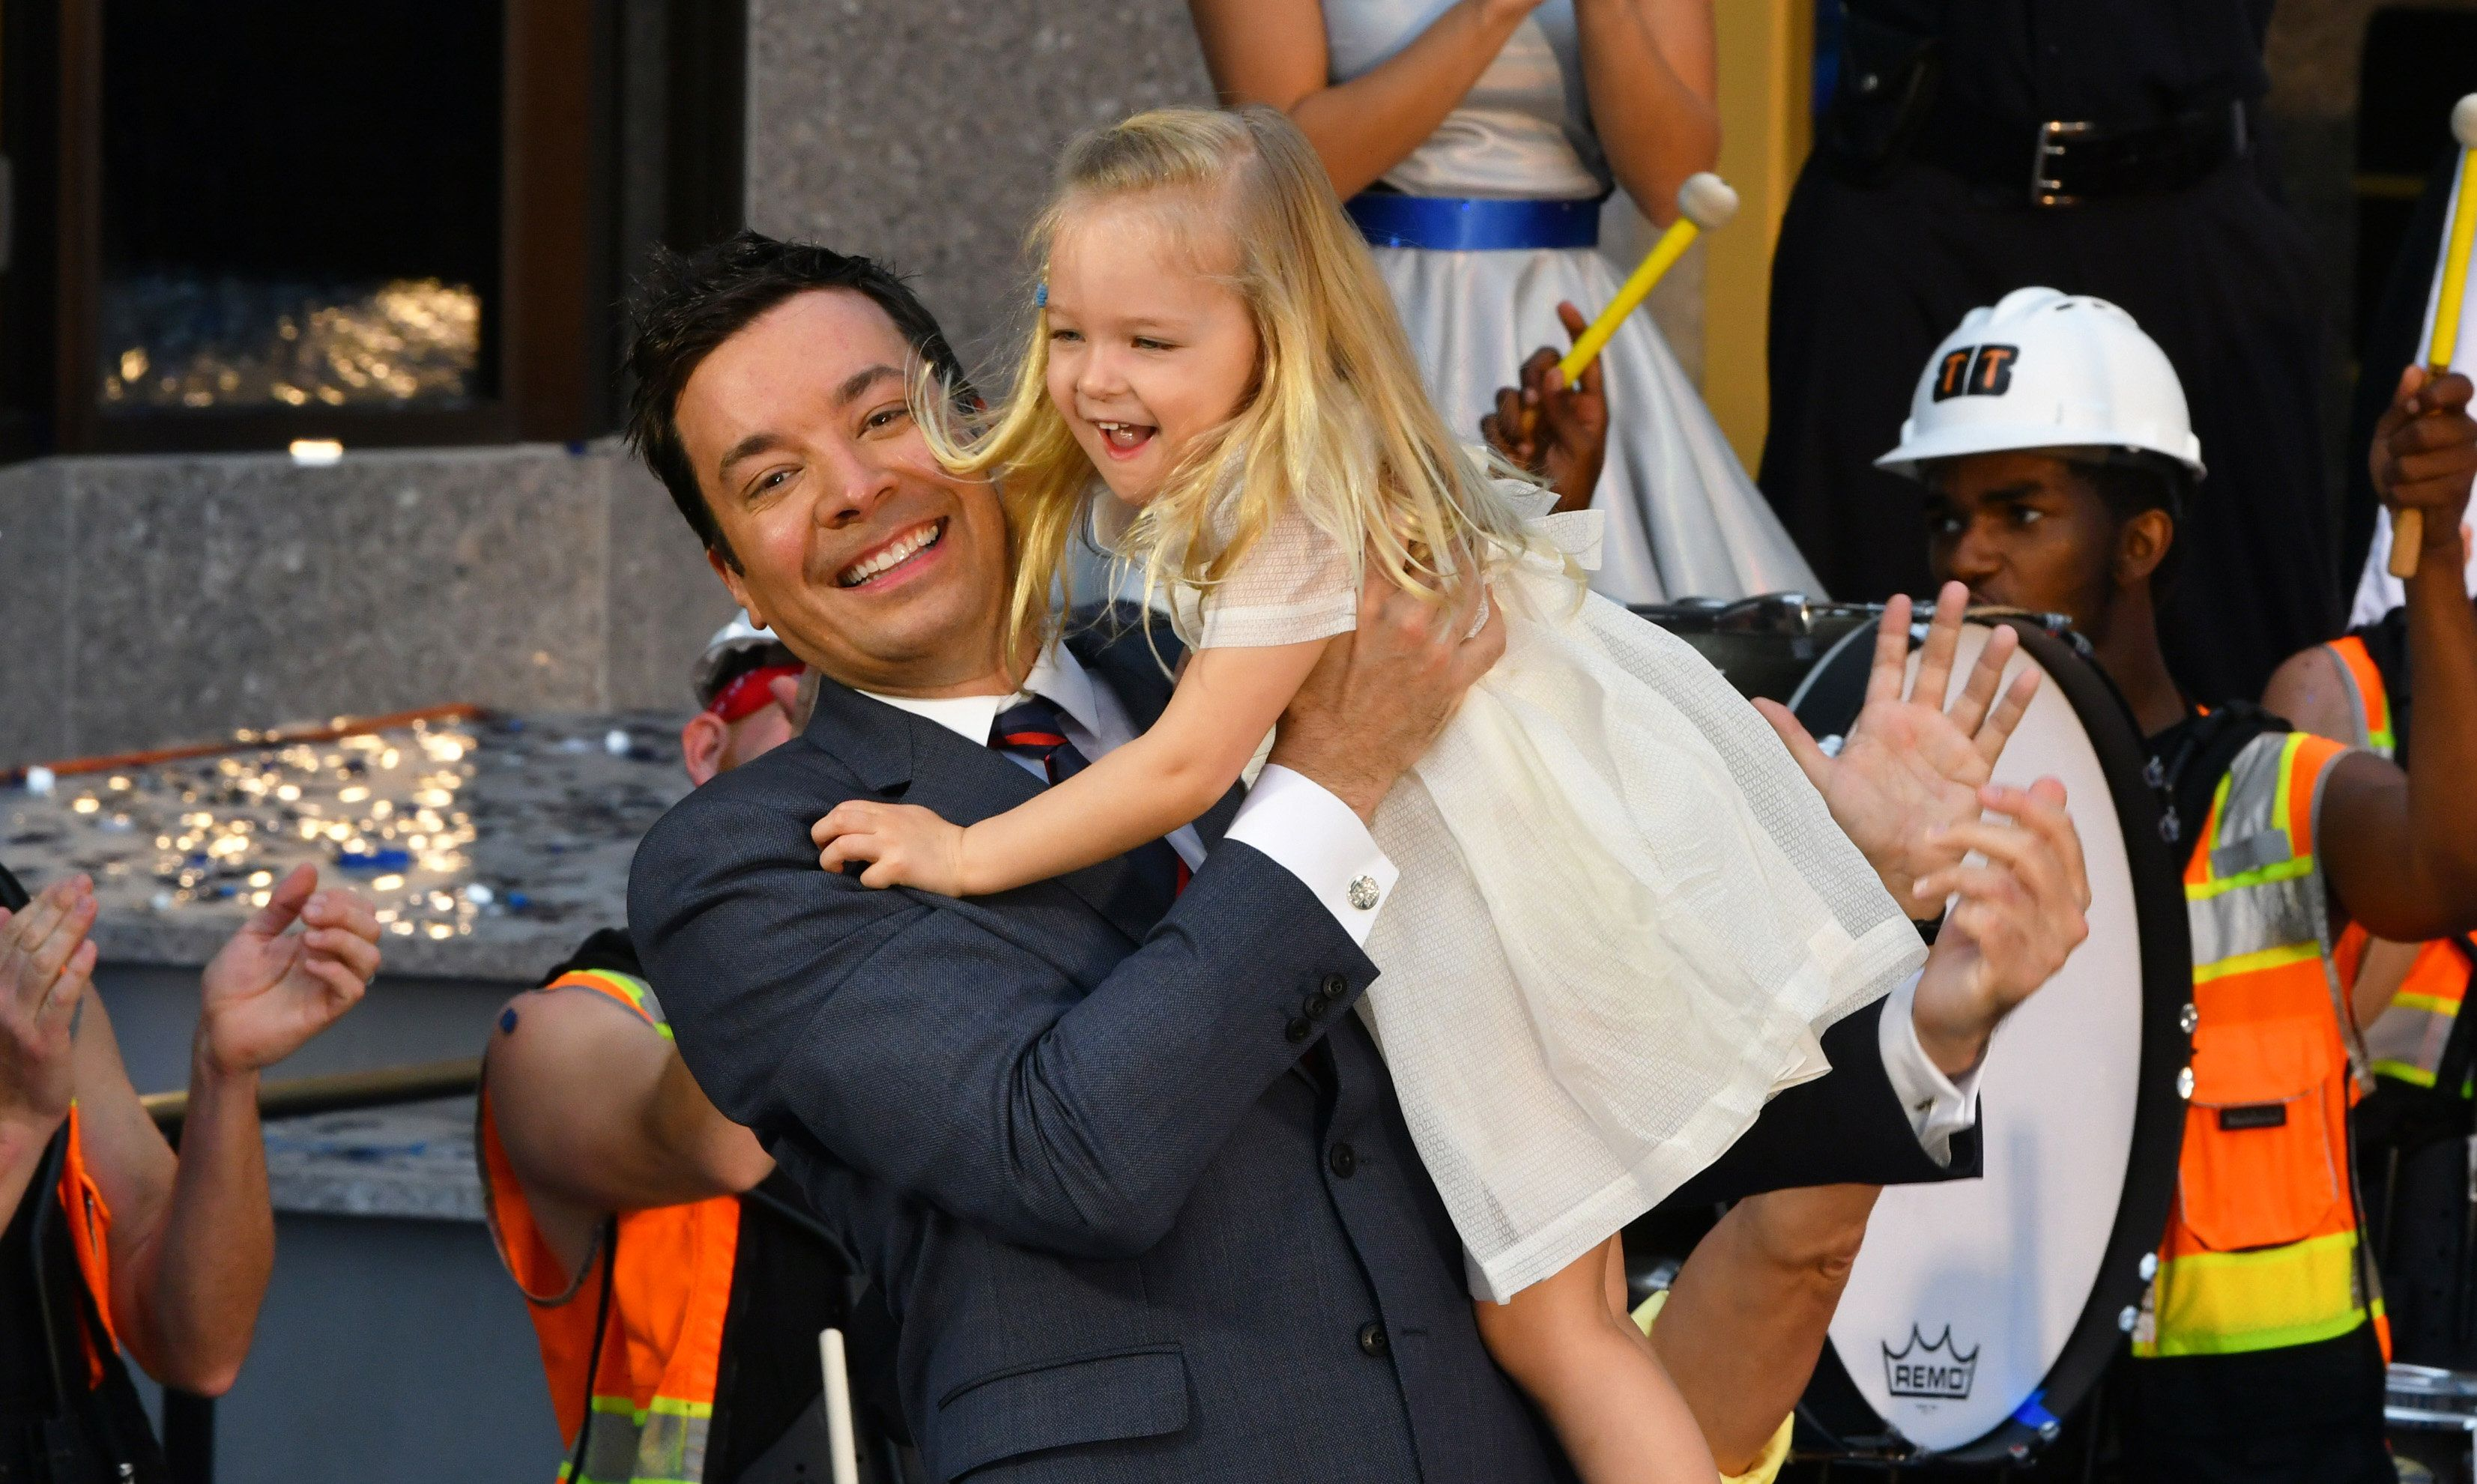 Orlando, FL - April 06: Jimmy Fallon holds his three year old daughter Winnie during the grand opening for the Race Through New York Starring Jimmy Fallon at Universal Orlando Resort on April 06, 2017 in Orlando, Florida.  The event included a parade with Fallon himself riding on a float in a parade to cut the ribbon for the new attraction.   PHOTOGRAPH BY Tim Shortt / ddp USA / Barcroft Images  London-T:+44 207 033 1031 E:hello@barcroftmedia.com - New York-T:+1 212 796 2458 E:hello@barcroftusa.com - New Delhi-T:+91 11 4053 2429 E:hello@barcroftindia.com www.barcroftimages.com (Photo credit should read Tim Shortt / Barcroft Media via Getty Images)